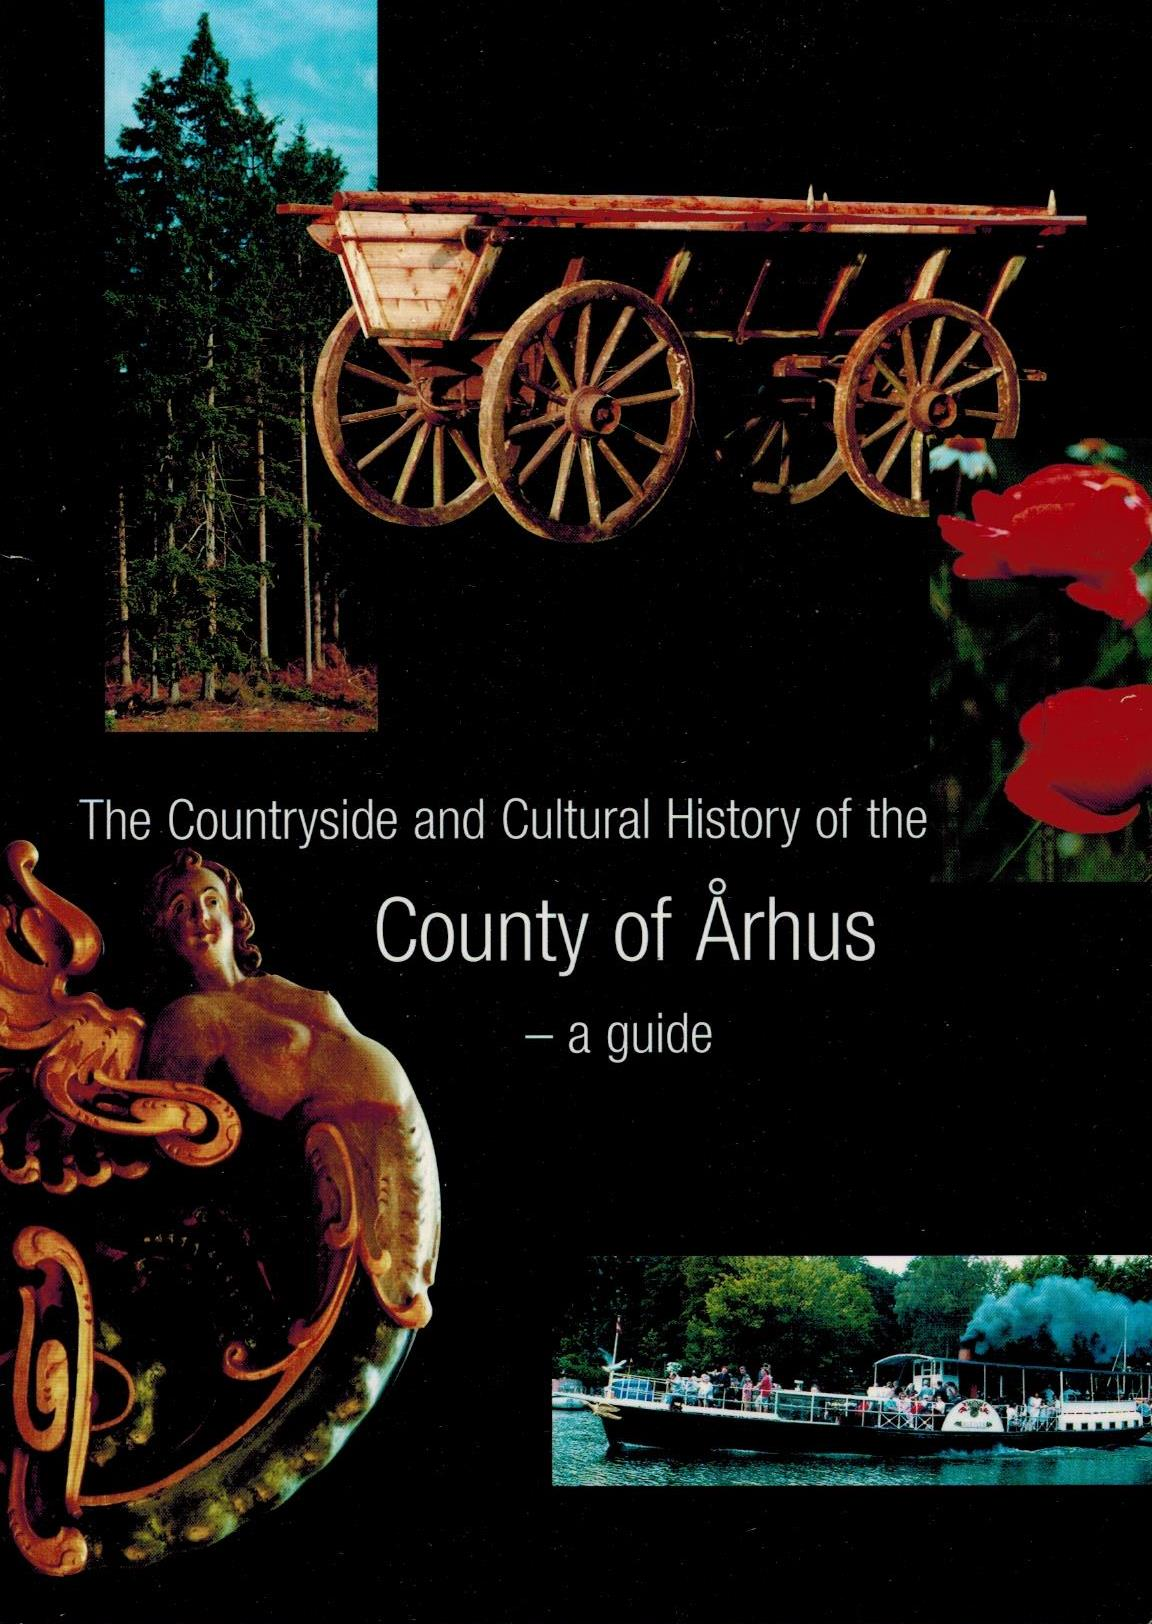 The countryside and cultural history of the County of Arhus - a guide du page county a descriptive and historical guide